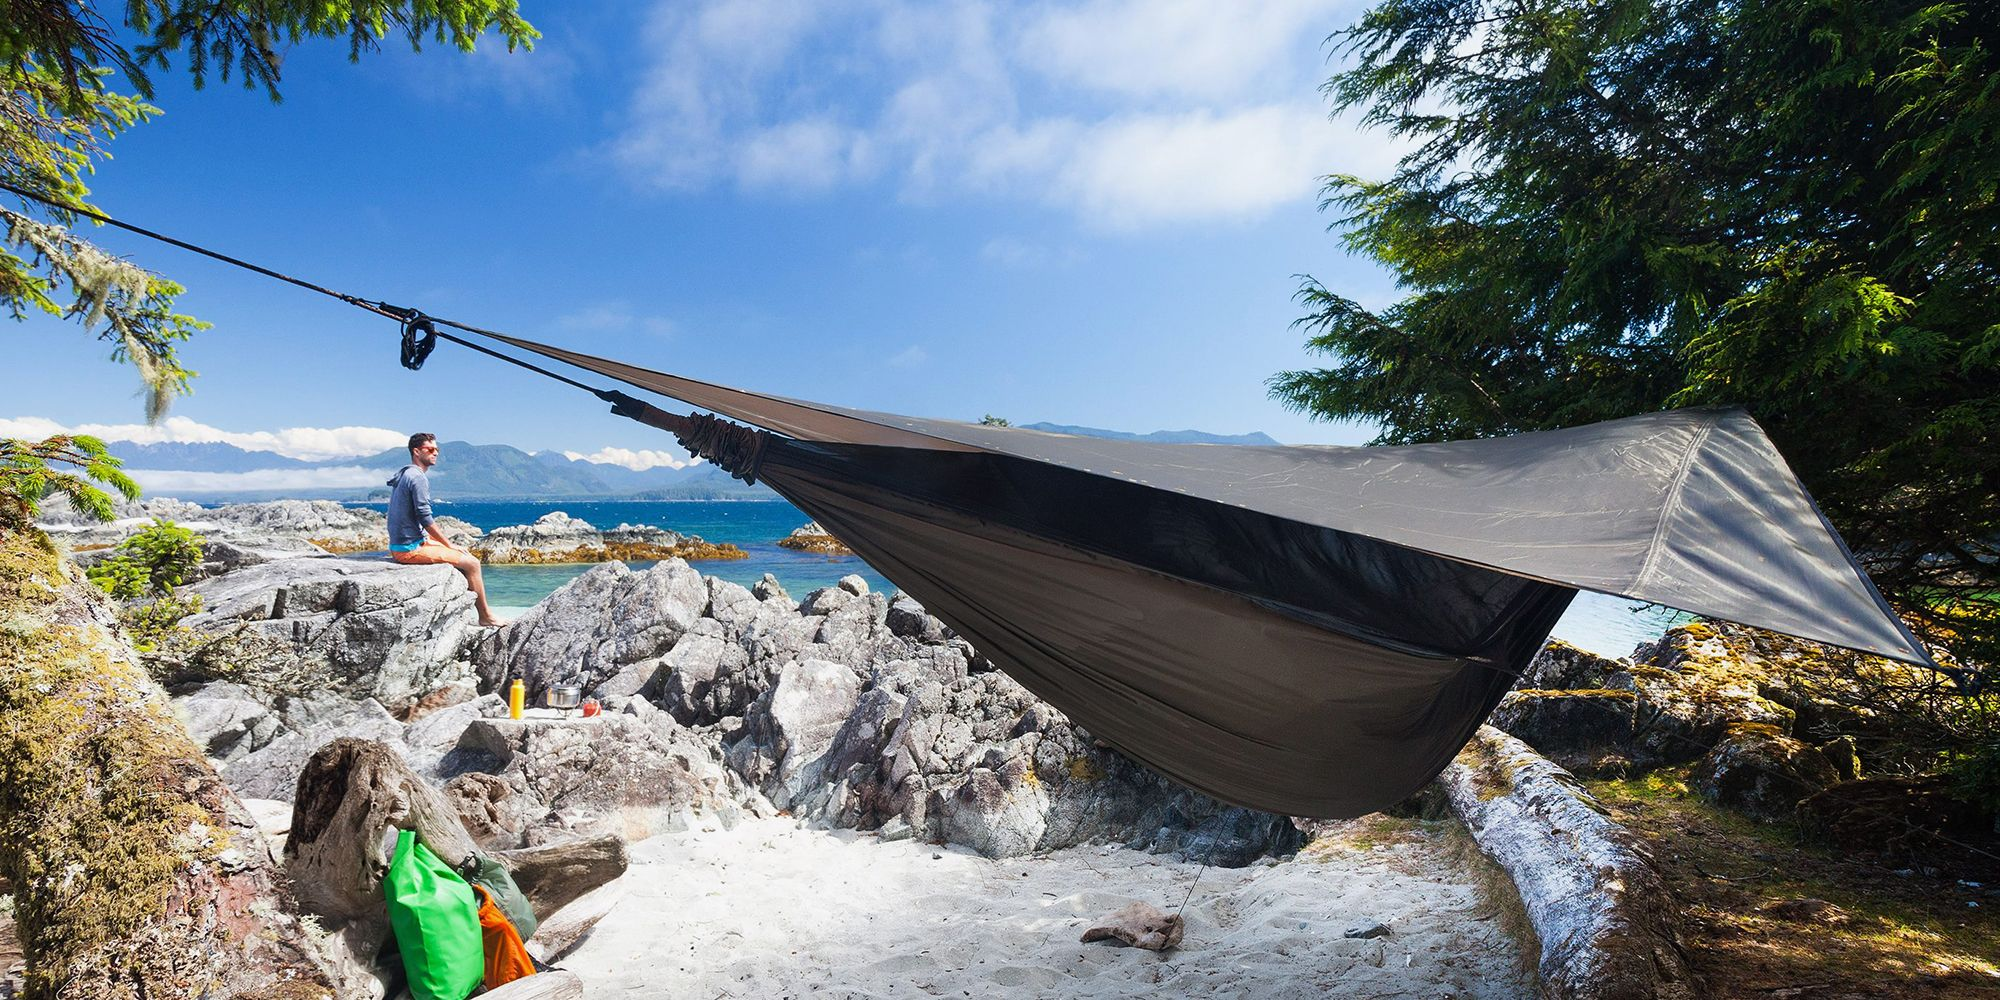 Hennessy Hammock tents & 7 Best Hammock Tents for Camping in 2018 - Suspended u0026 Tree Tents